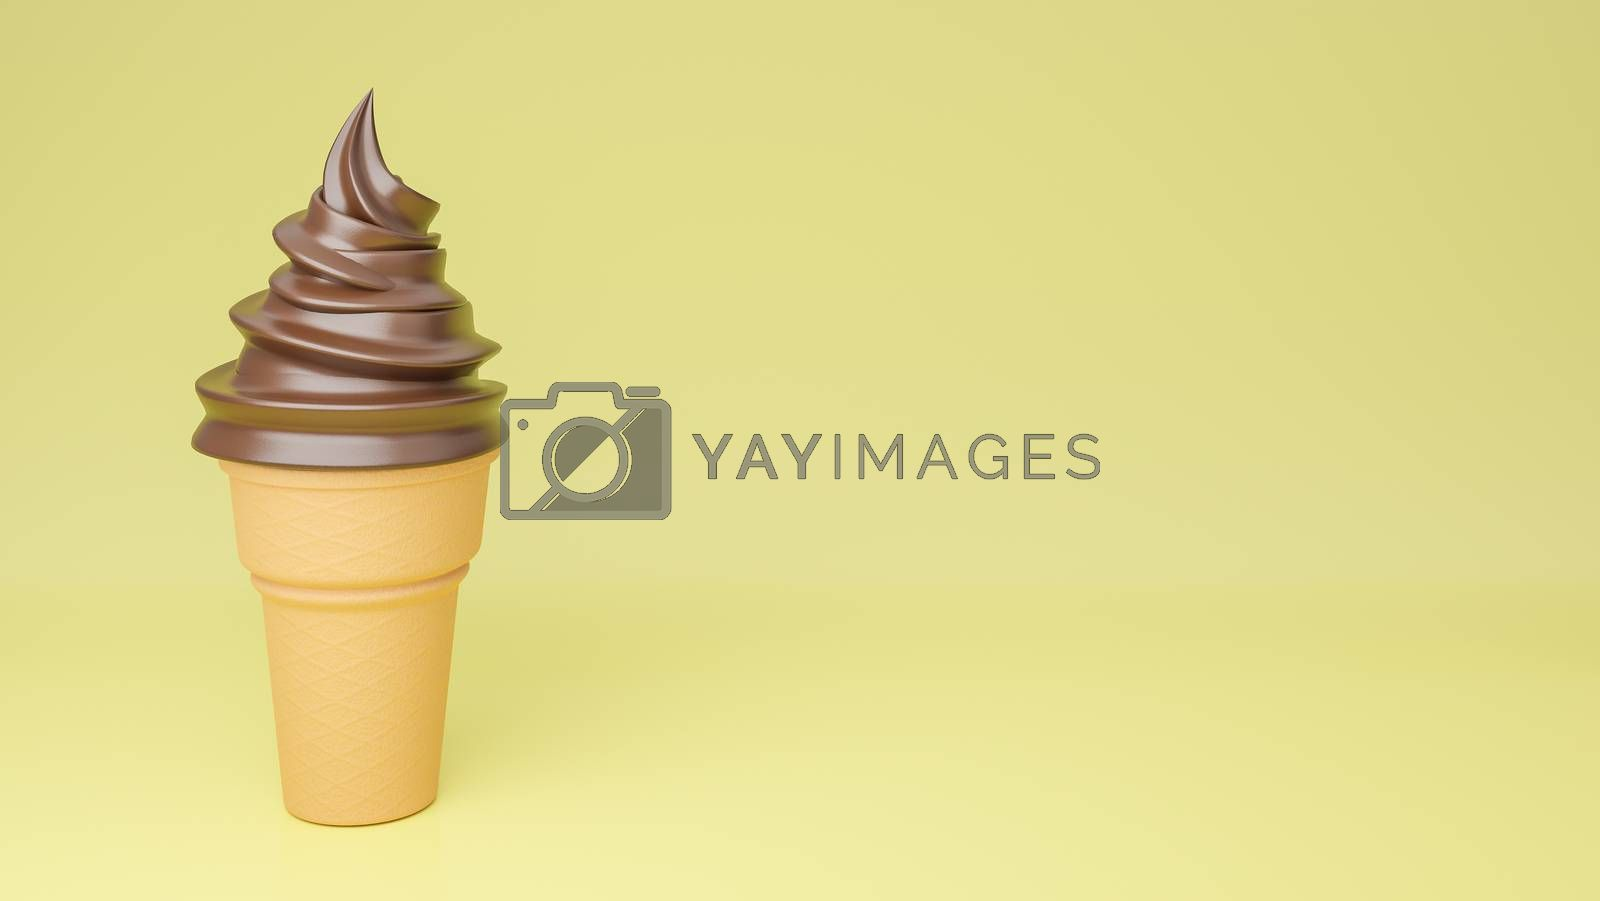 Soft serve ice cream of chocolate flavours on crispy cone on yellow background.,3d model and illustration.